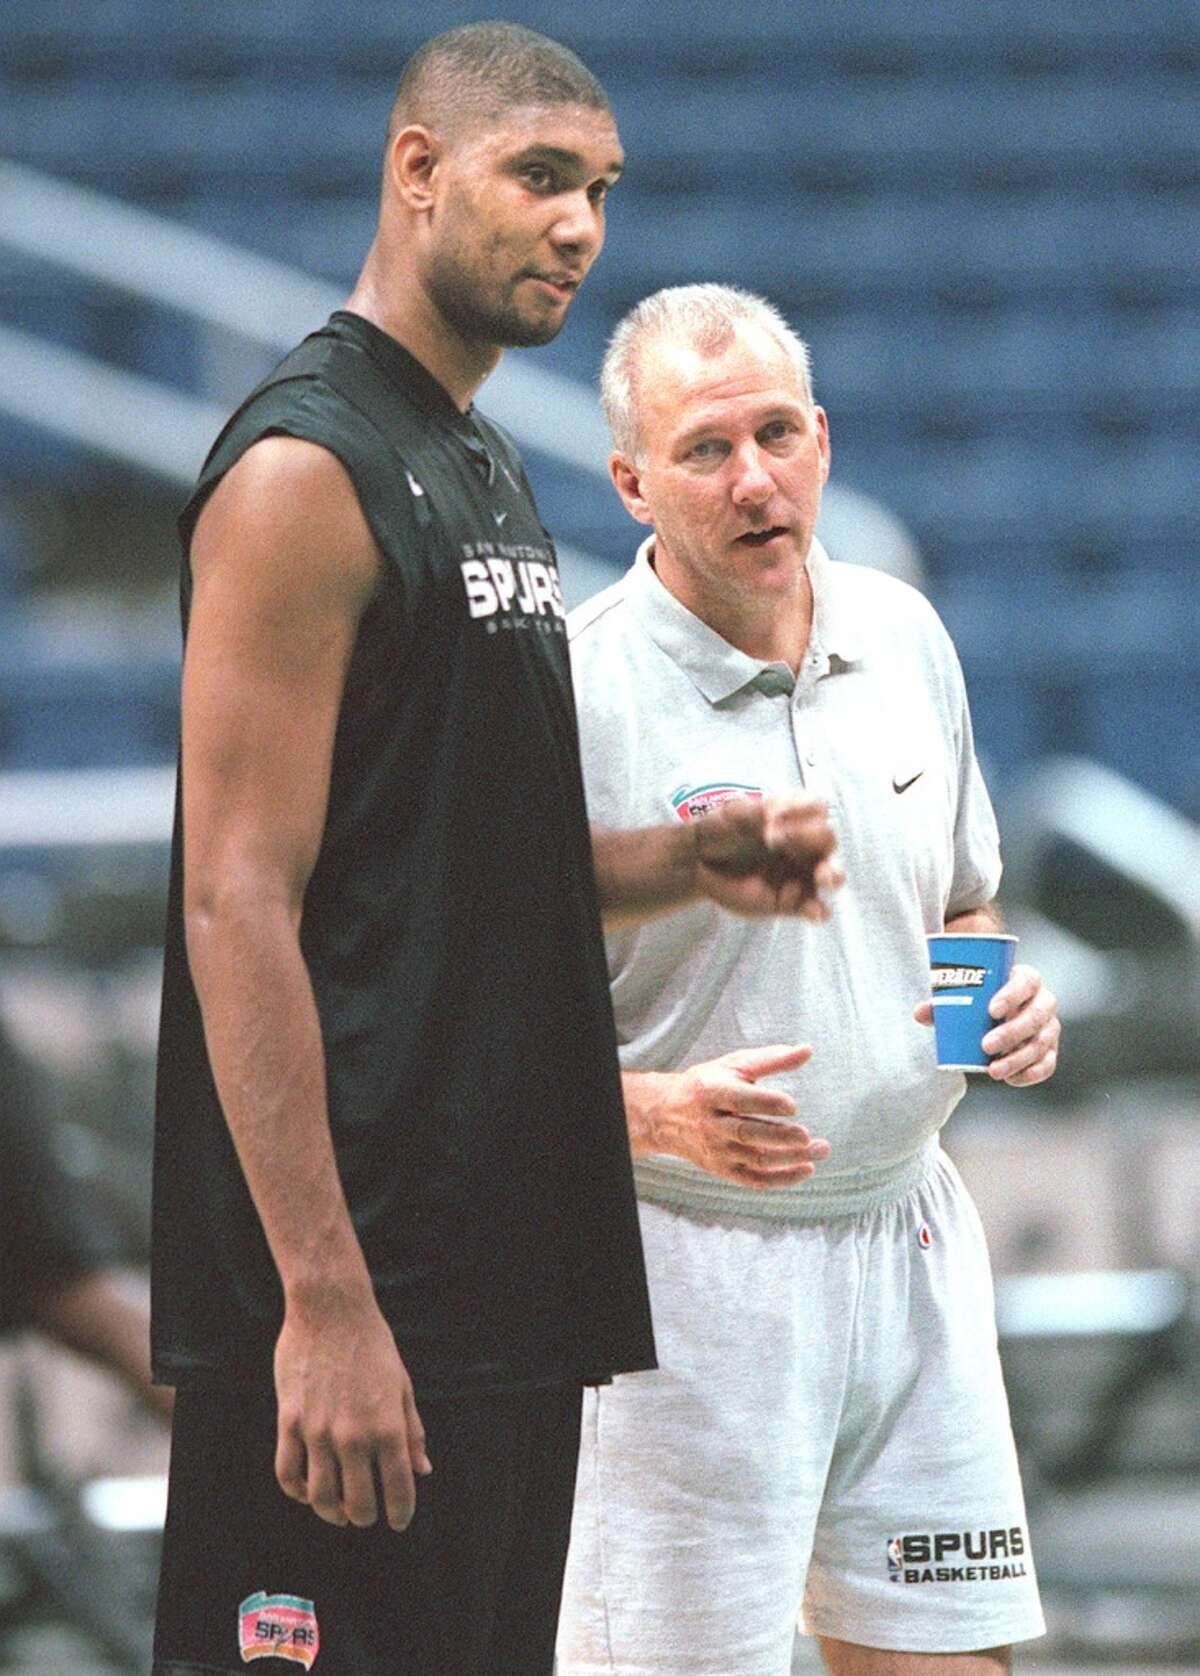 Gregg Popovich talks with Tim Duncan during Spurs practice at the Alamodome on June 9, 1999.